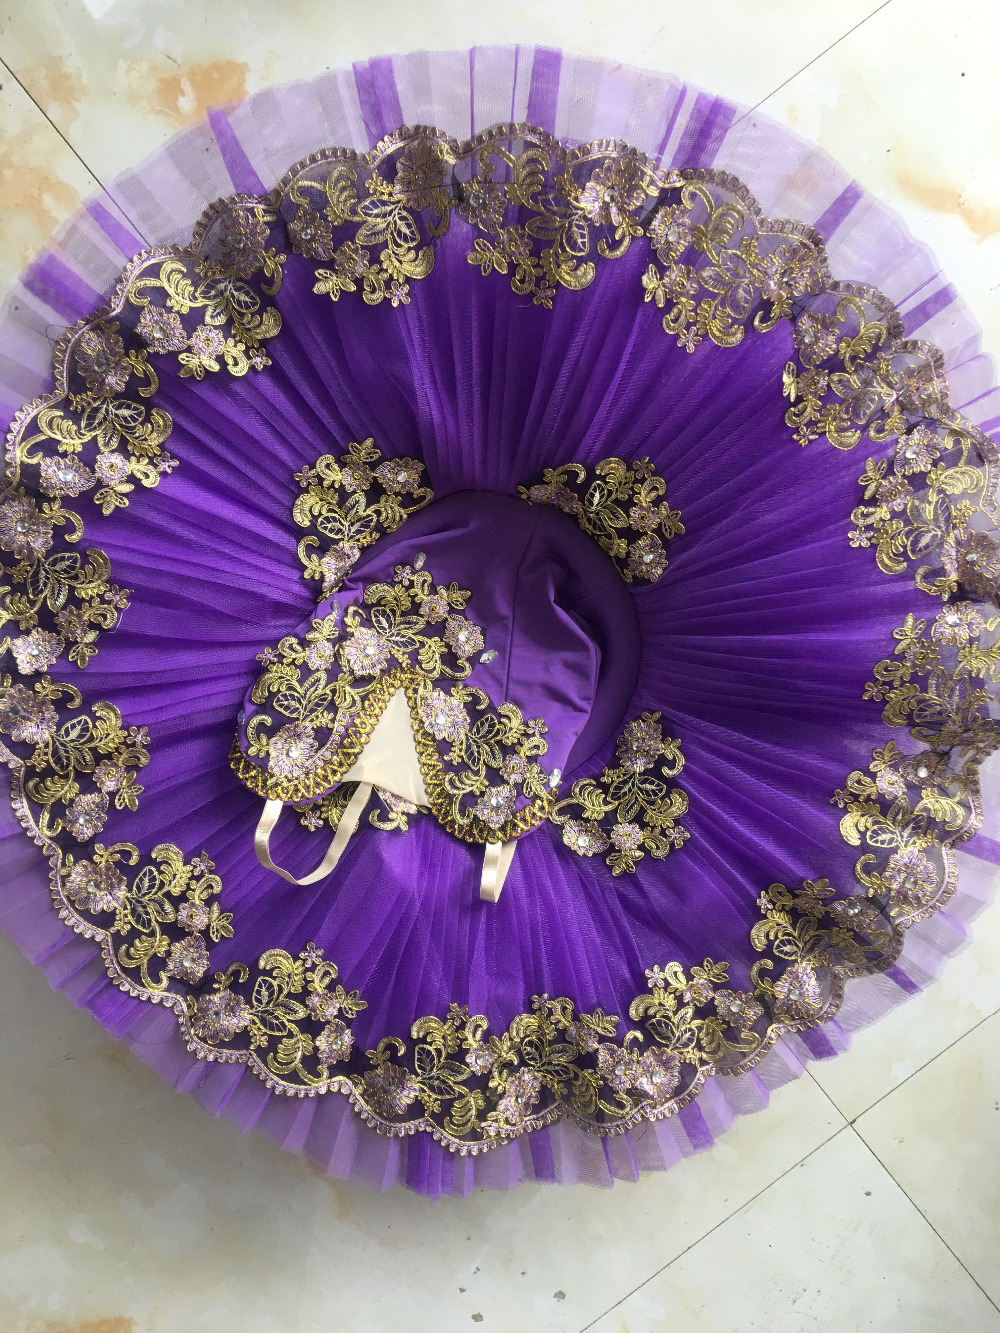 Picture of 2017 New Adult Purple Ballet Tutu Performance Professional Classical Ballet Tutus Girls Pancake Tutu Nutcracker